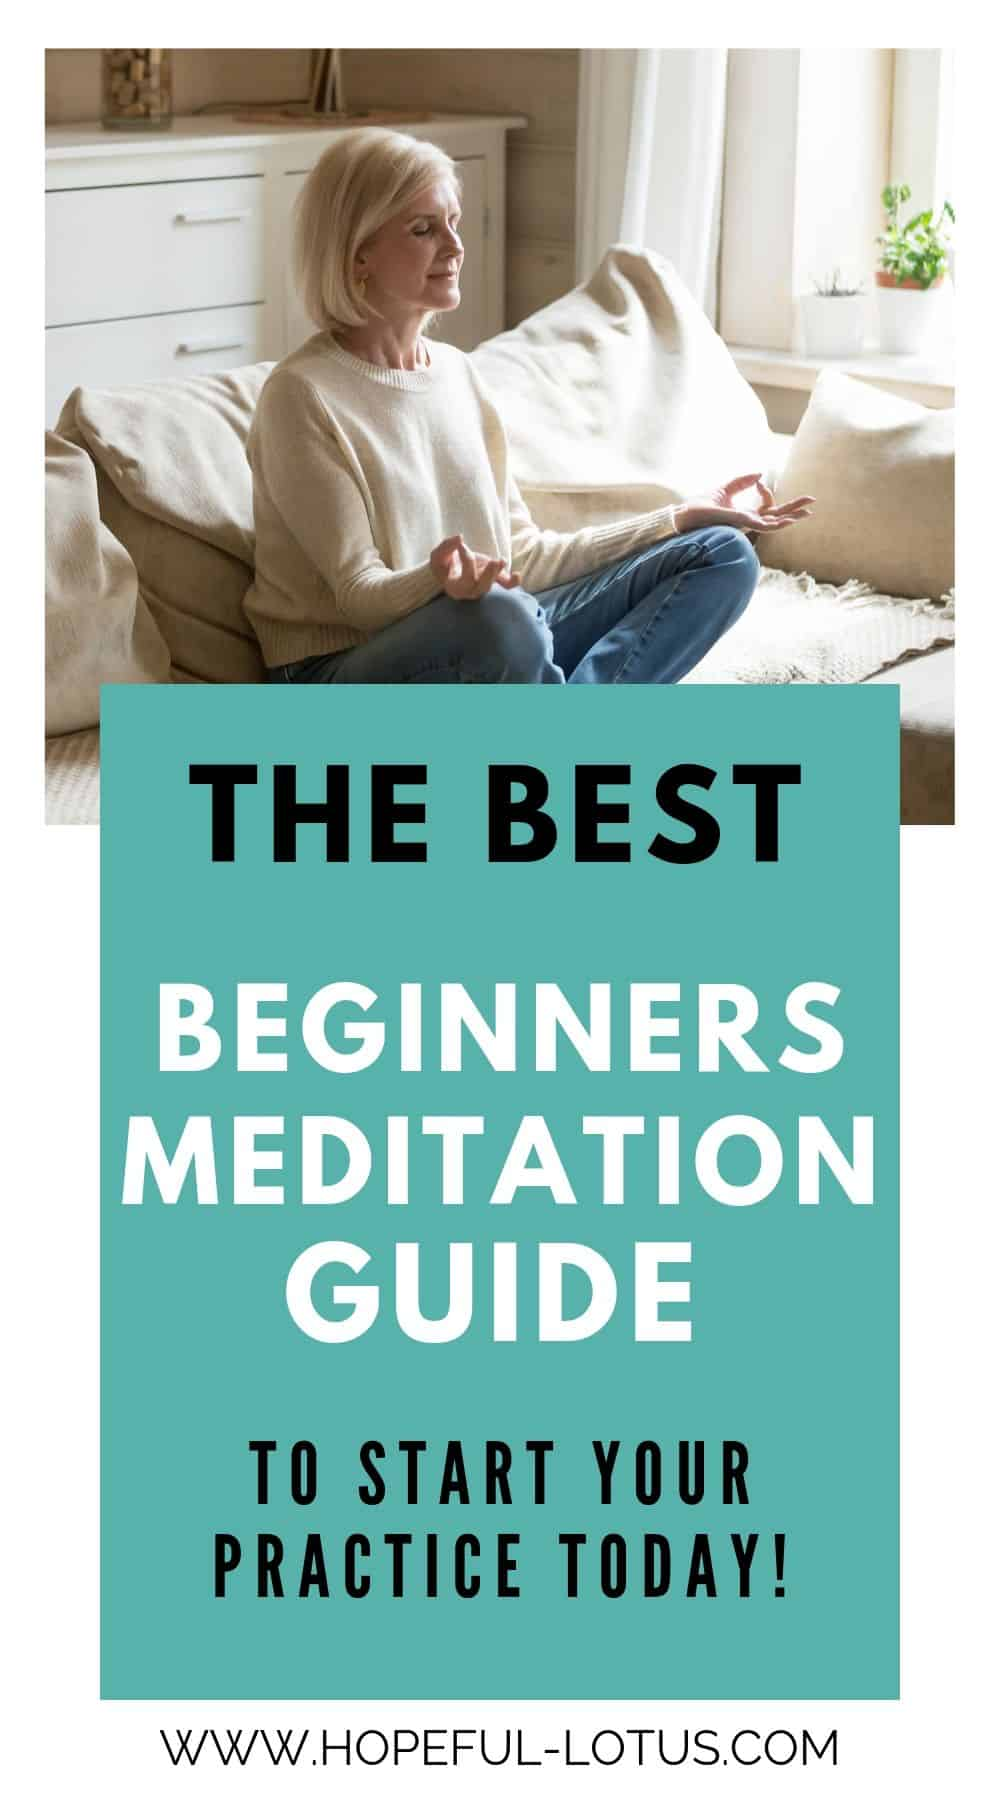 Learn meditation for beginners with this beginners meditation guide, including actionable steps and beginners techniques to start your home practice today!